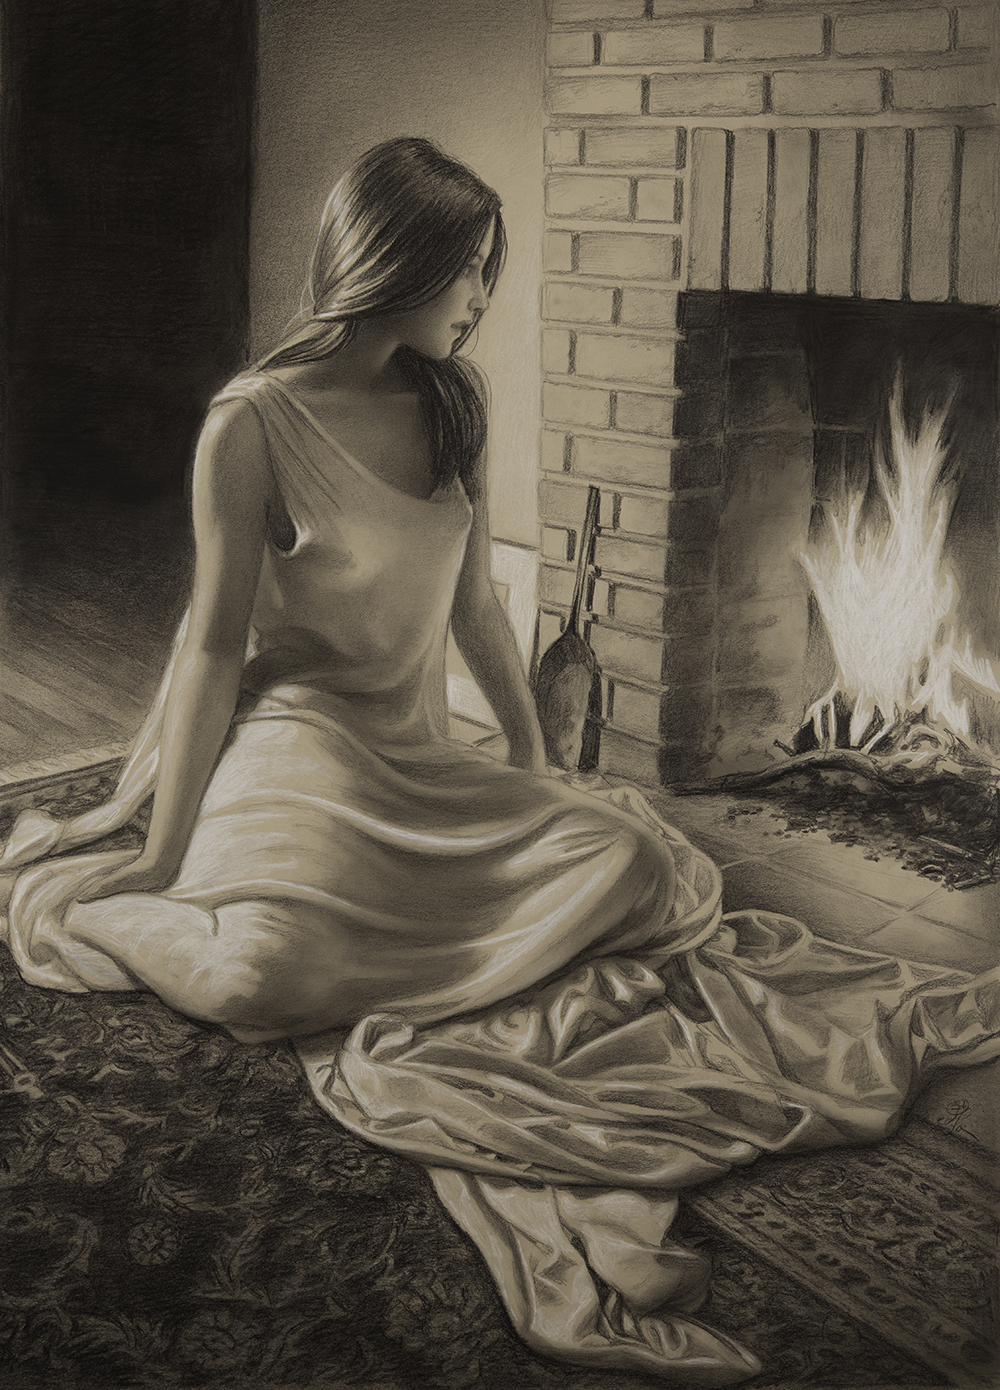 By the Fire copyright 2014 Edson Campos